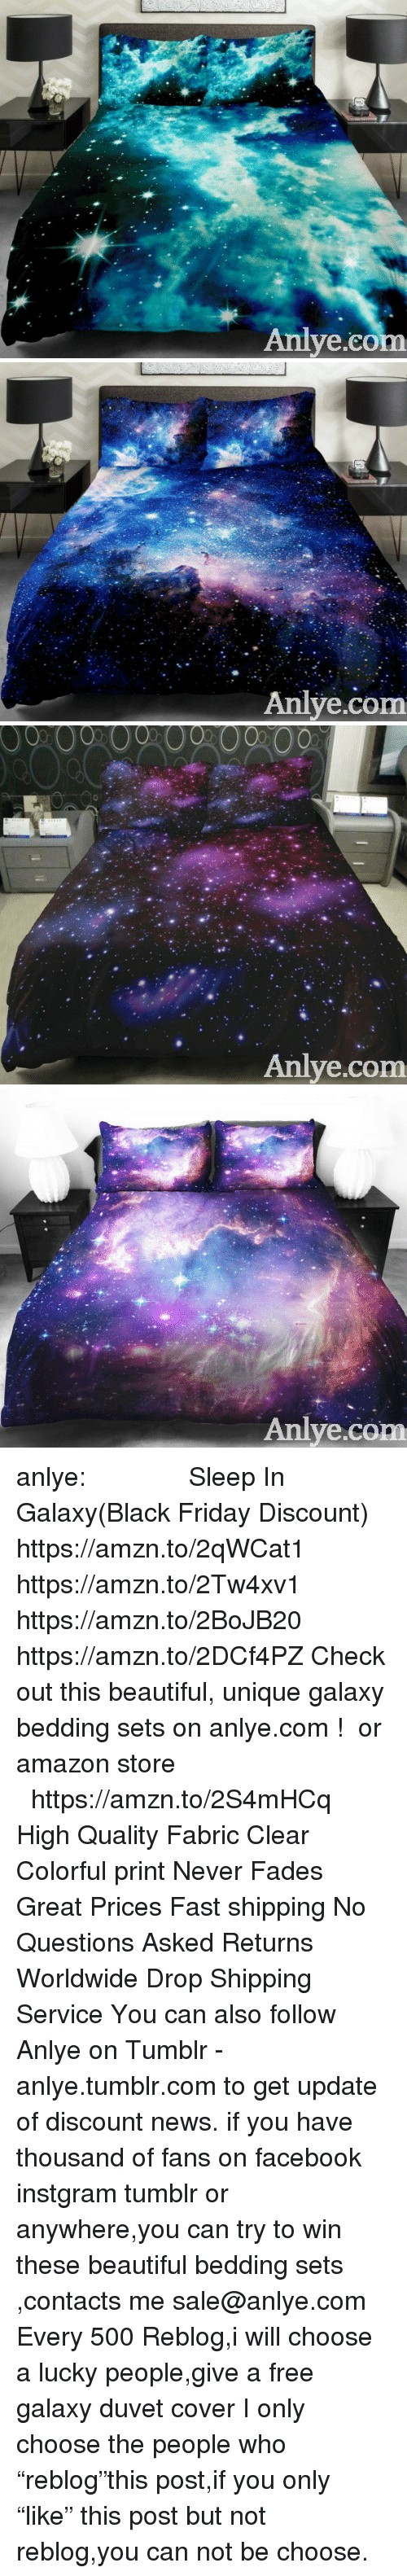 "Amazon, Beautiful, and Black Friday: Aniye.co   Anlye.com   00  00  00  002000  0  Anlye.com   Anlye.com anlye:              Sleep In Galaxy(Black Friday Discount)  https://amzn.to/2qWCat1 https://amzn.to/2Tw4xv1 https://amzn.to/2BoJB20 https://amzn.to/2DCf4PZ Check out this beautiful, unique galaxy bedding sets on anlye.com !  or amazon store    https://amzn.to/2S4mHCq High Quality Fabric Clear  Colorful print Never Fades Great Prices Fast shipping No Questions Asked Returns Worldwide Drop Shipping Service You can also follow Anlye on Tumblr - anlye.tumblr.com to get update of discount news. if you have thousand of fans on facebook instgram tumblr or anywhere,you can try to win these beautiful bedding sets ,contacts me sale@anlye.com Every 500 Reblog,i will choose a lucky people,give a free galaxy duvet cover I only choose the people who ""reblog""this post,if you only ""like"" this post but not reblog,you can not be choose."